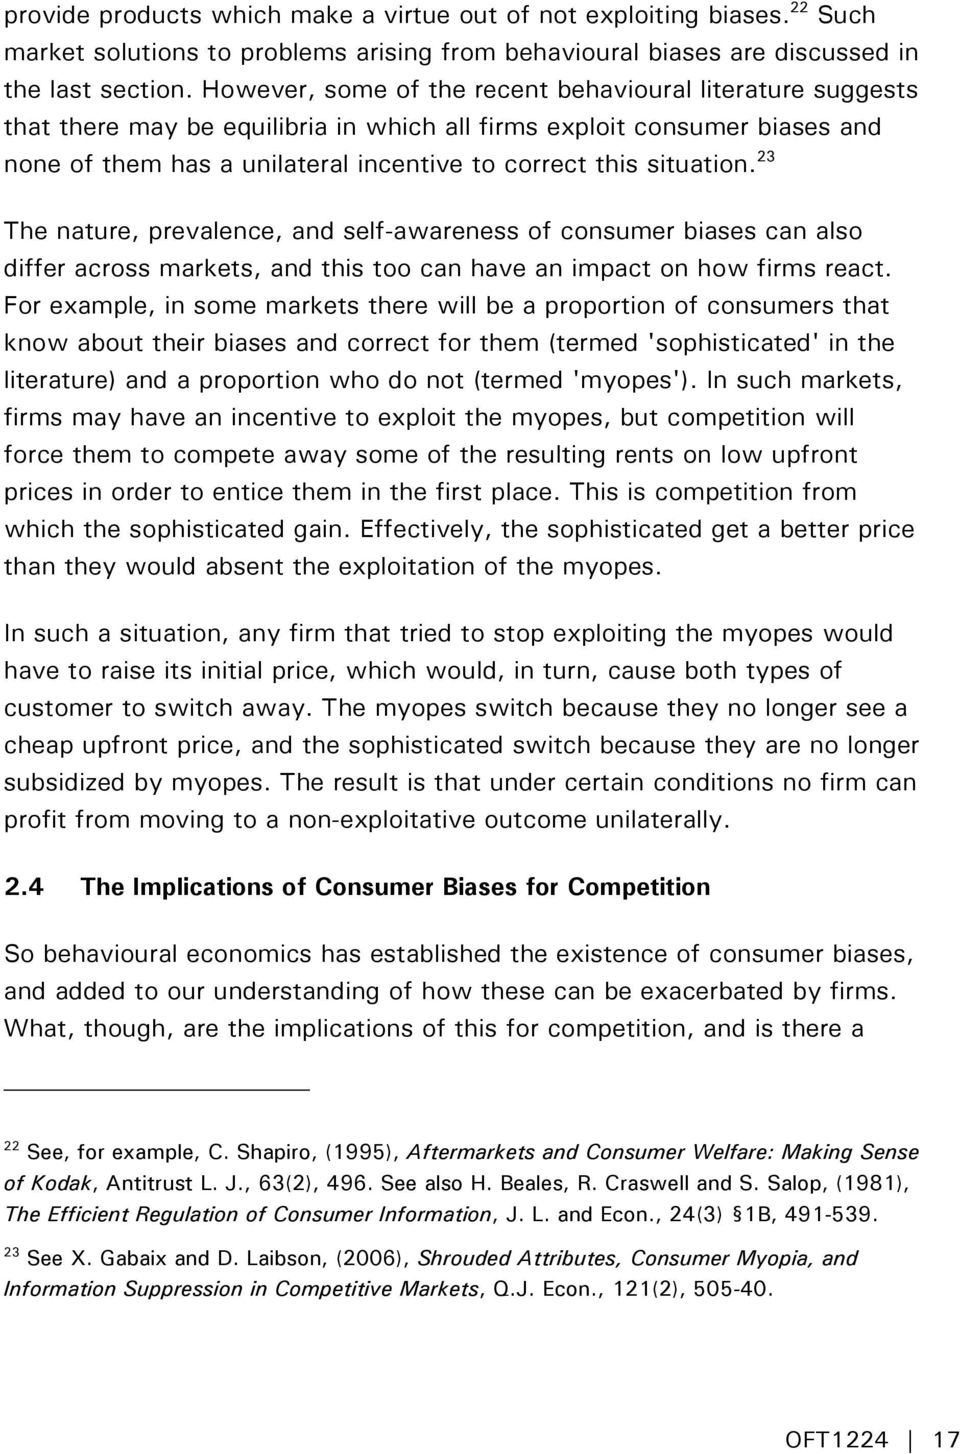 situation. 23 The nature, prevalence, and self-awareness of consumer biases can also differ across markets, and this too can have an impact on how firms react.